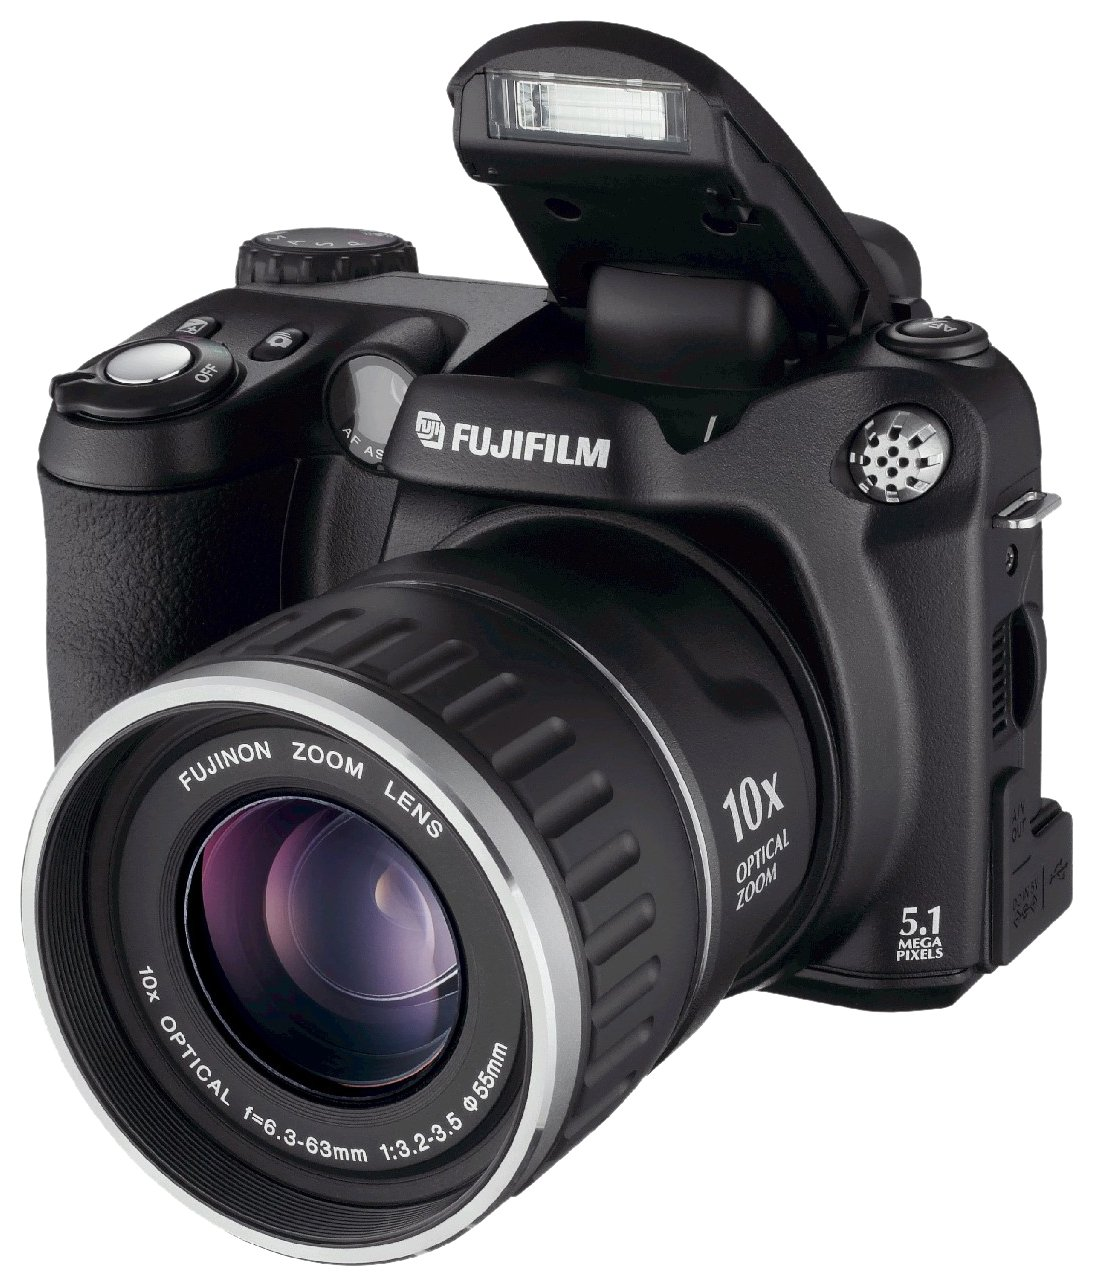 Fujifilm FinePix S5600 Zoom Digital Camera - Black 1.8: Amazon.co.uk: